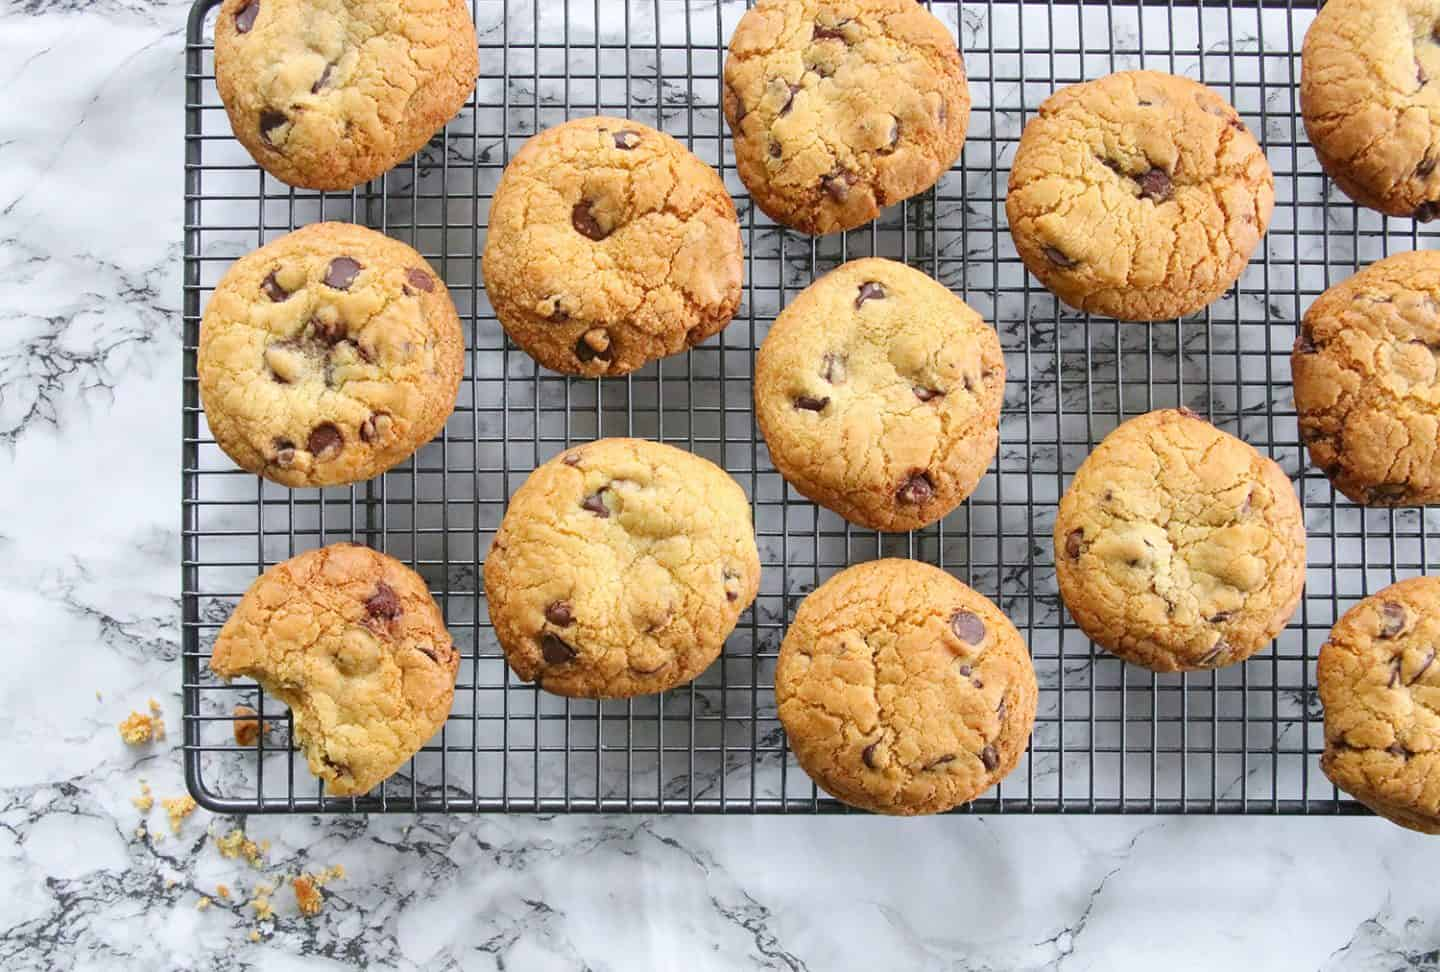 My Chewy Gluten Free Choc Chip Cookies Recipe (dairy free, low FODMAP)